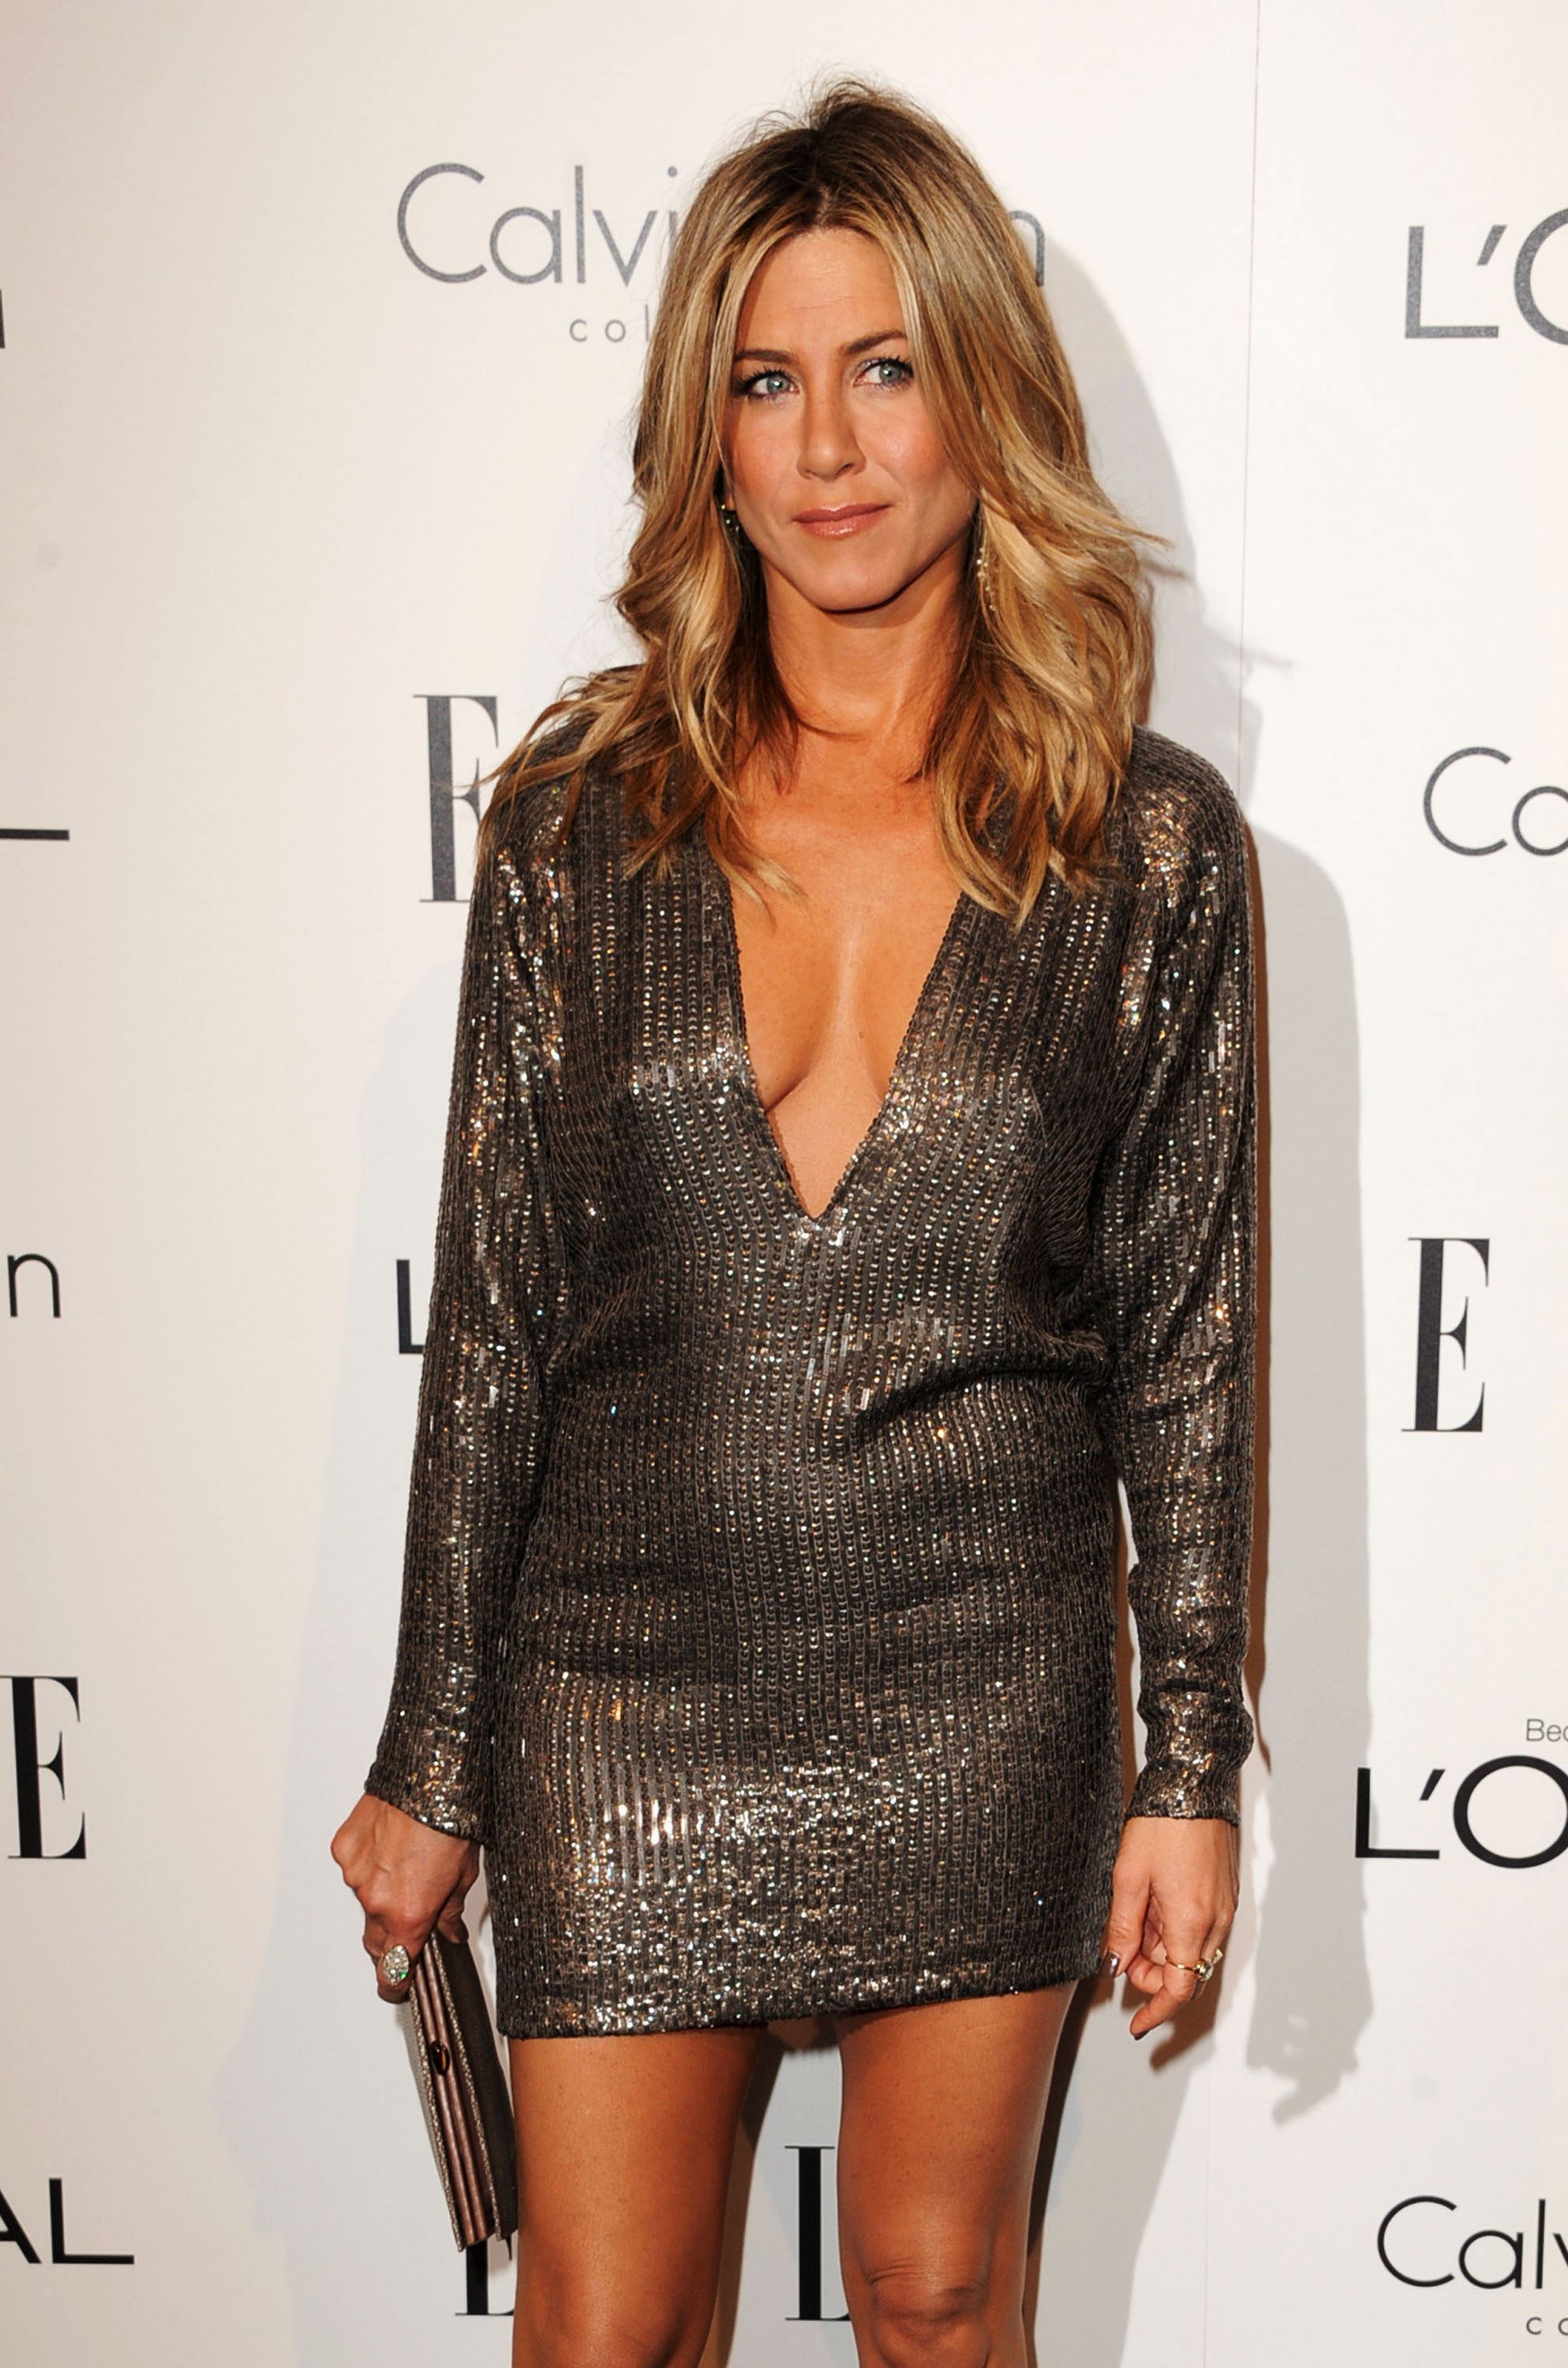 Jennifer Aniston In Off-Shoulder Or Long Sleeves: Which Look Do You Like The Most? 2